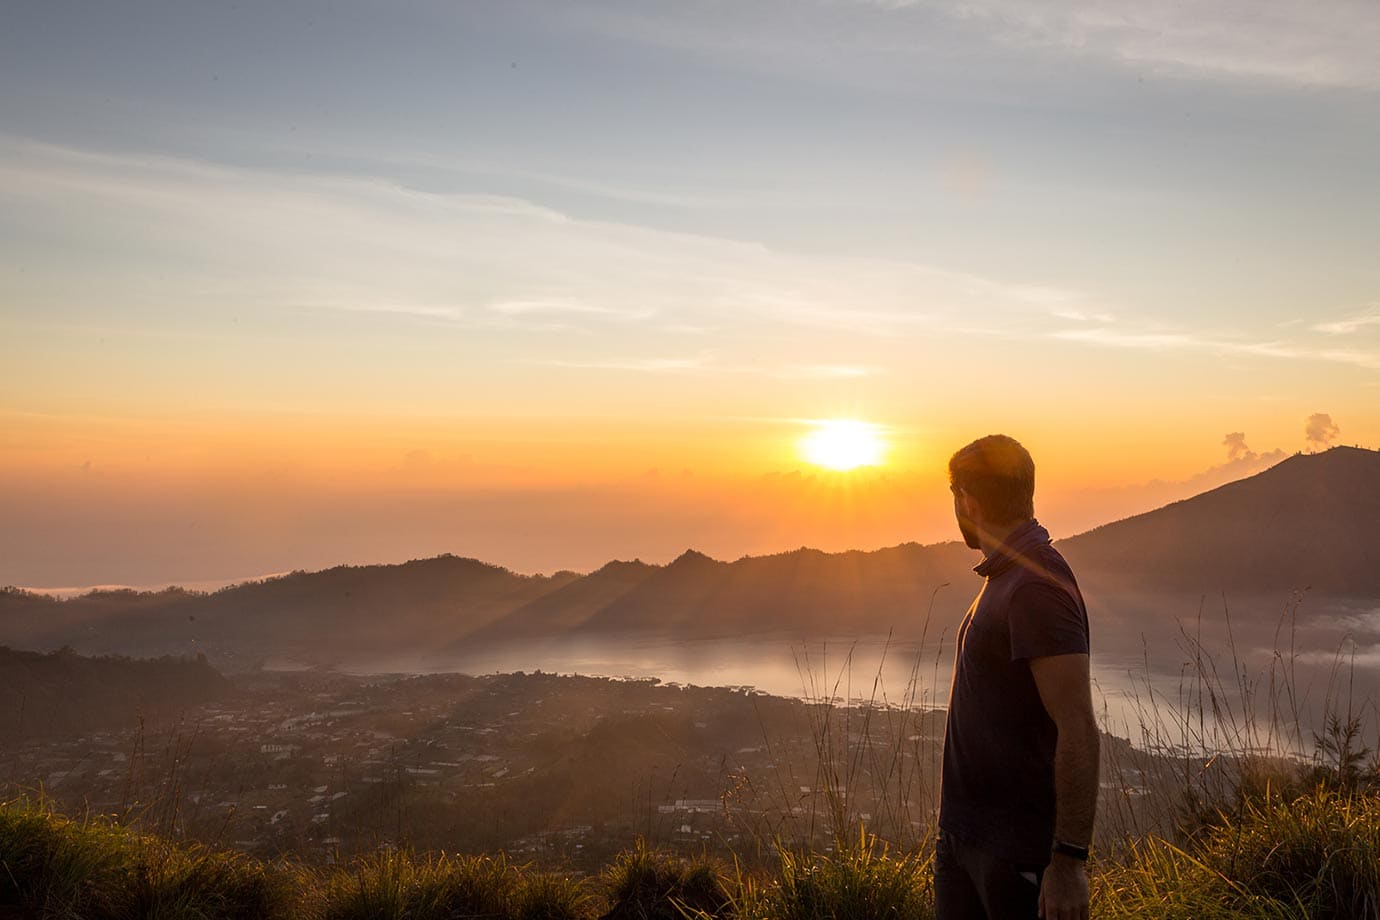 Standing at the top of Mount Batur